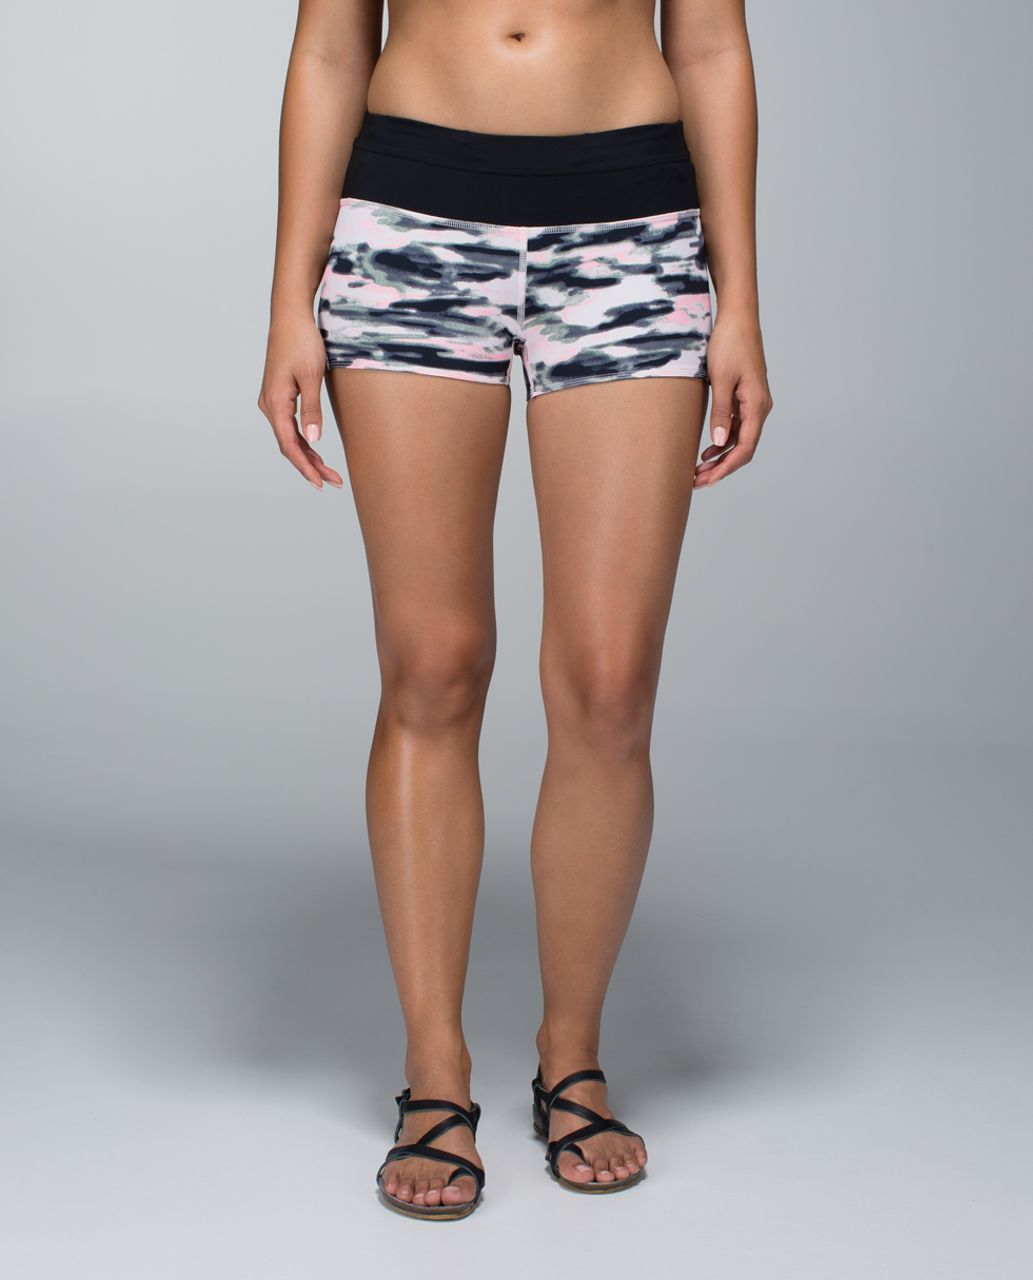 Lululemon Water Bound Short - Wamo Camo Barely Pink / Black